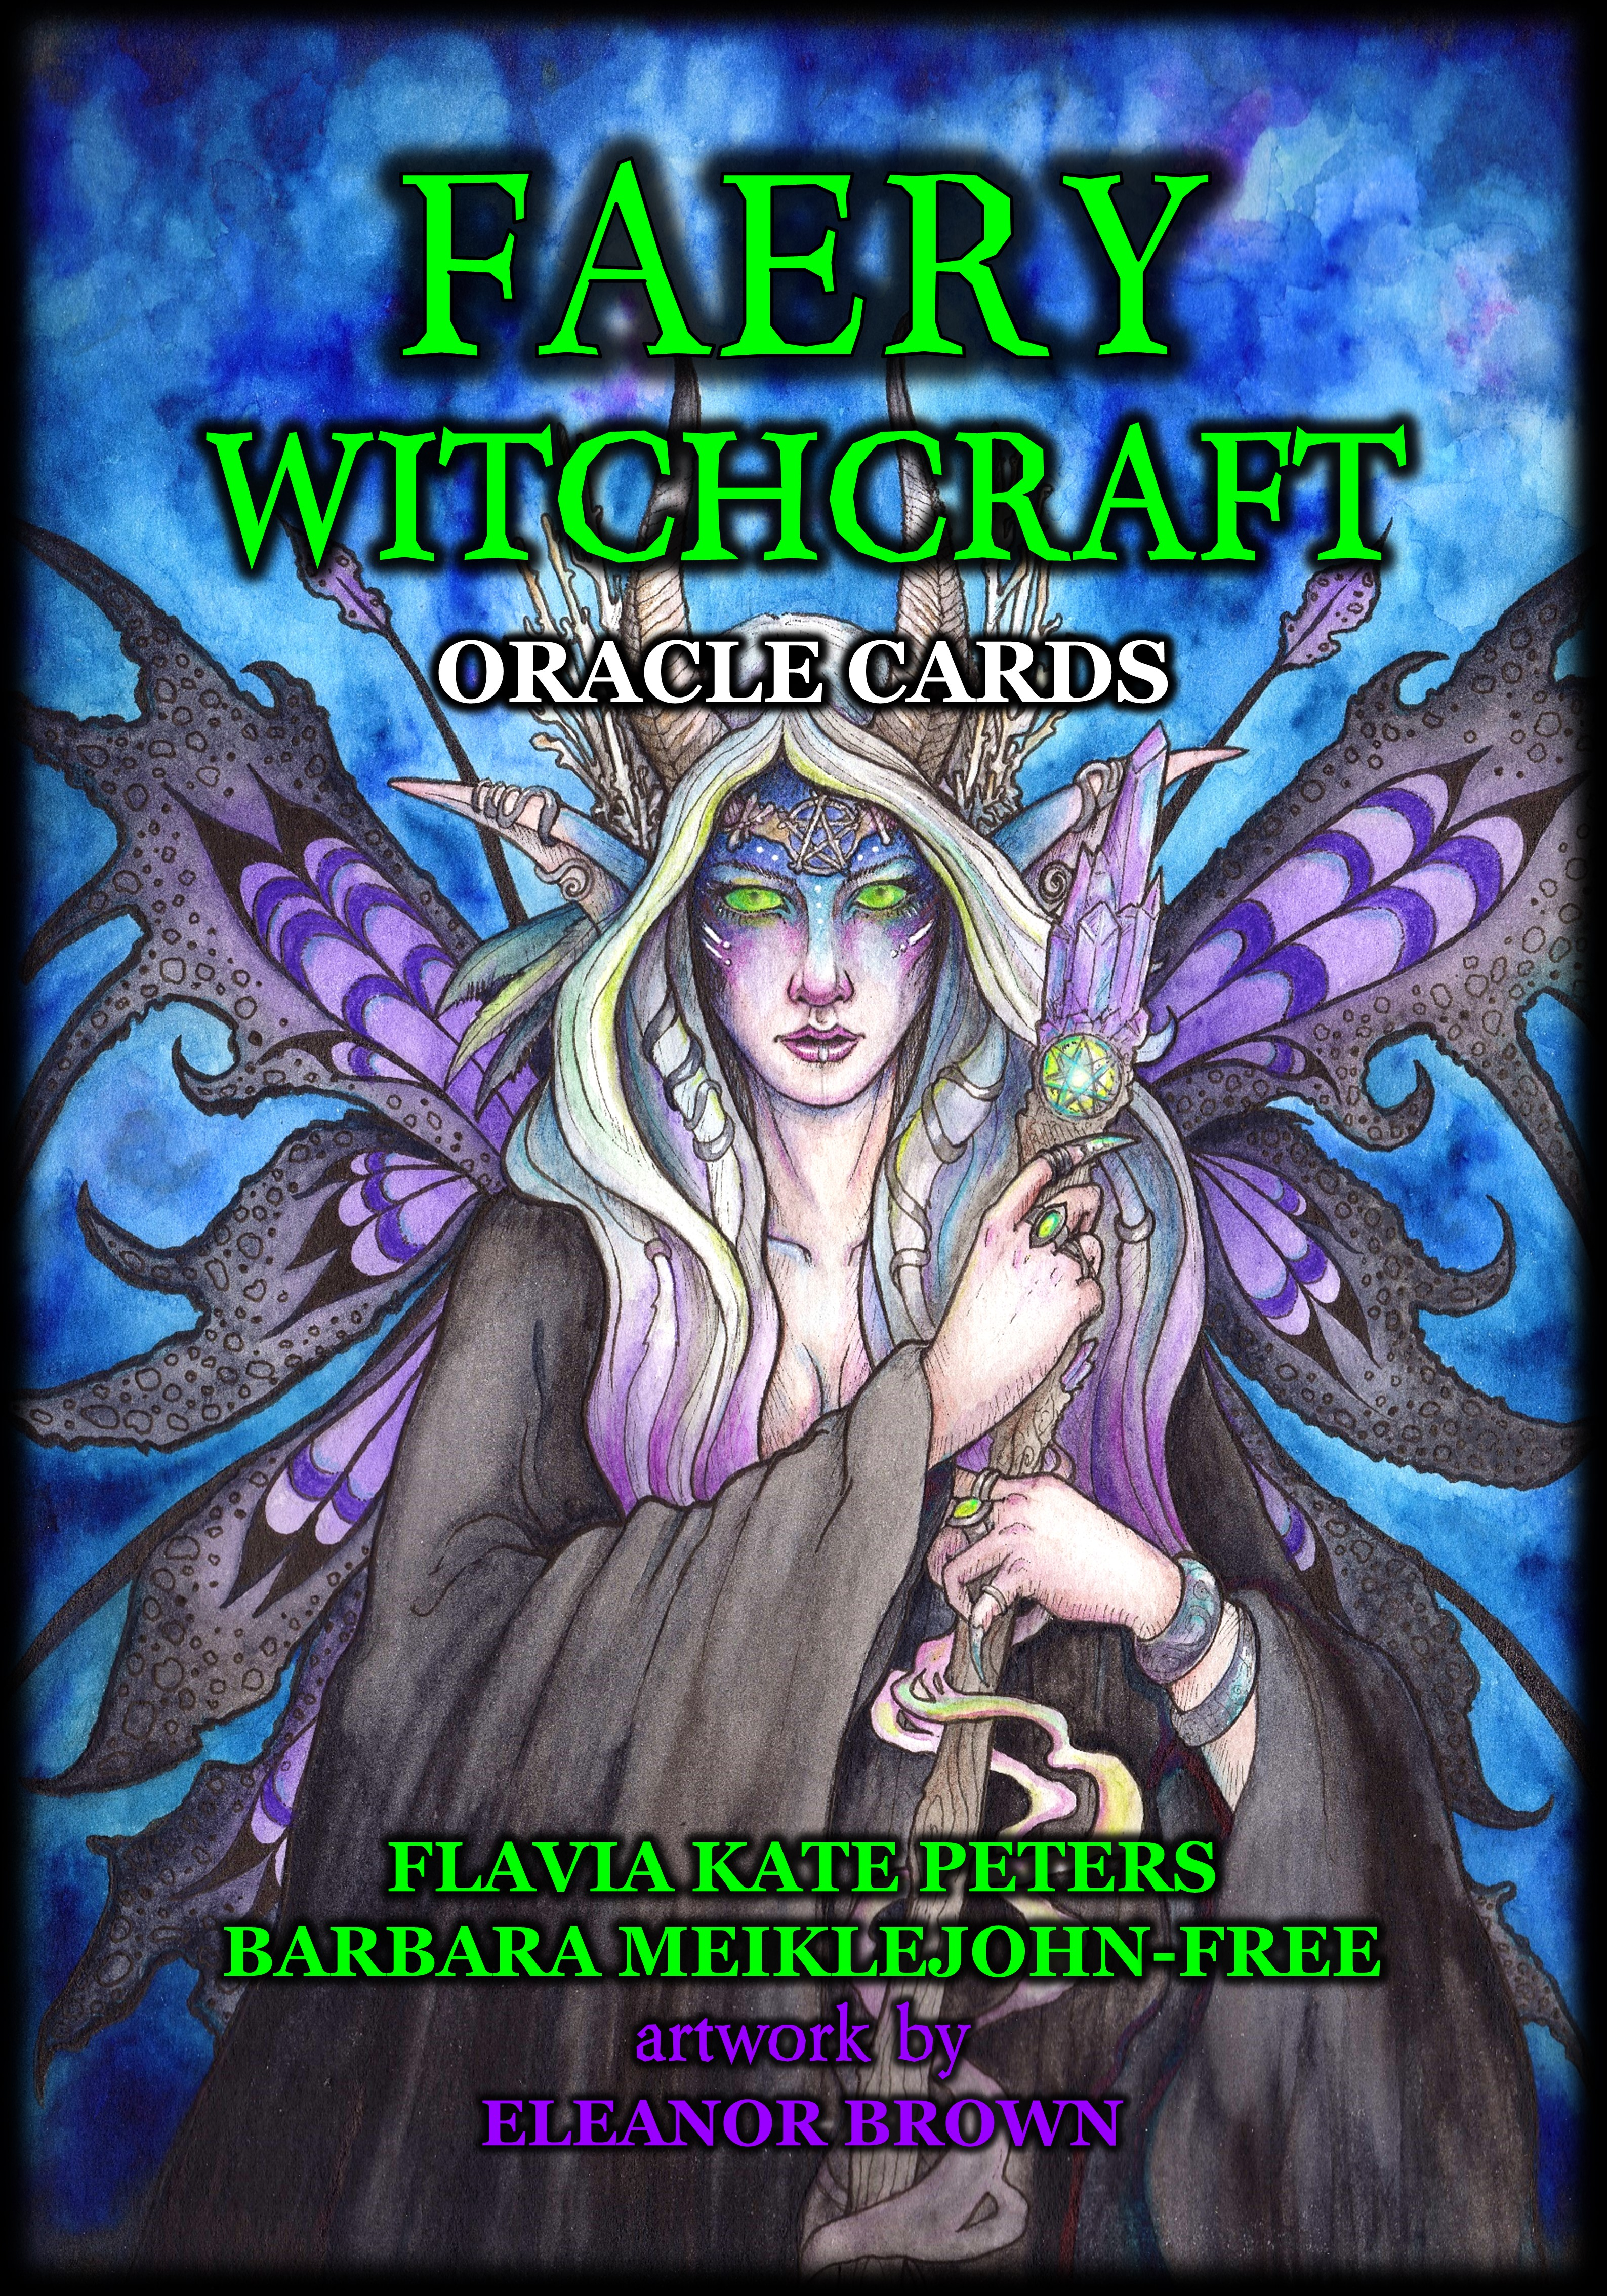 Faery Witchcraft Oracle cards